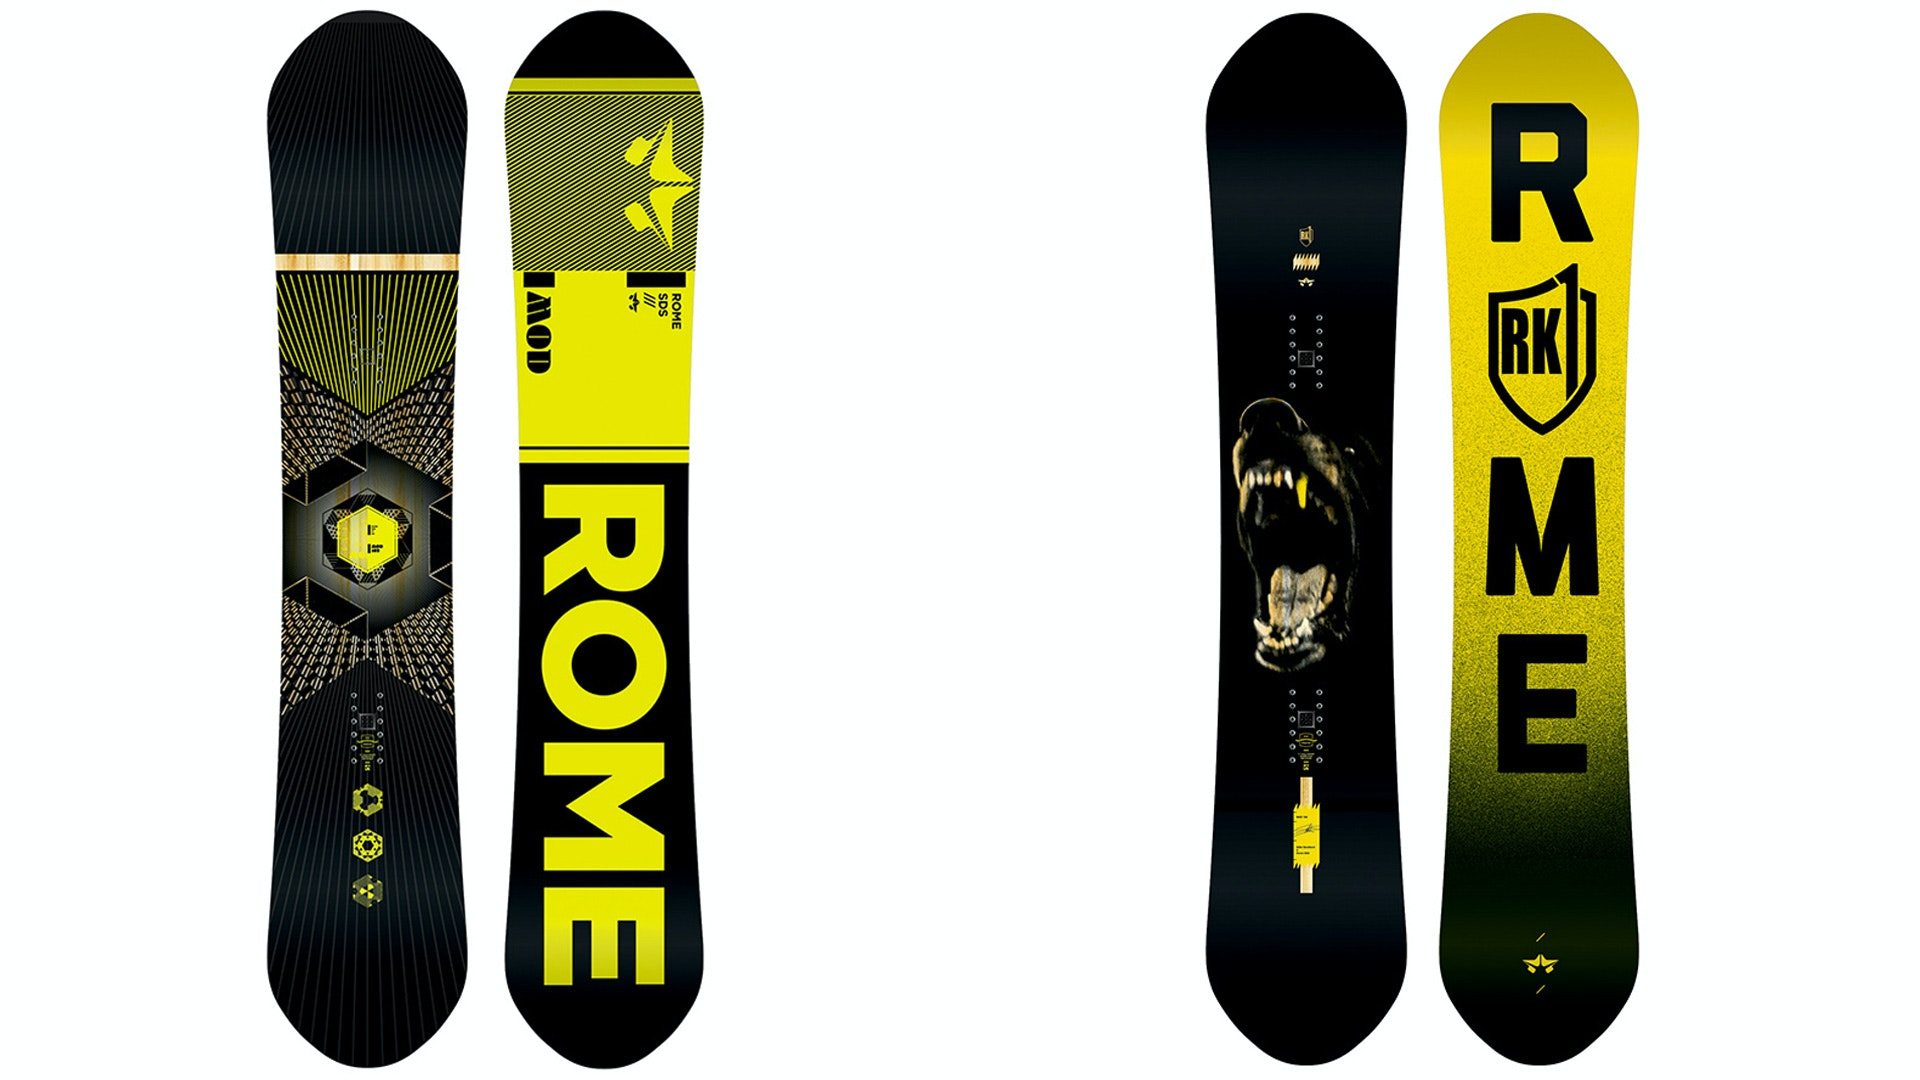 Rome Mod 2016-2017 Snowboard Review